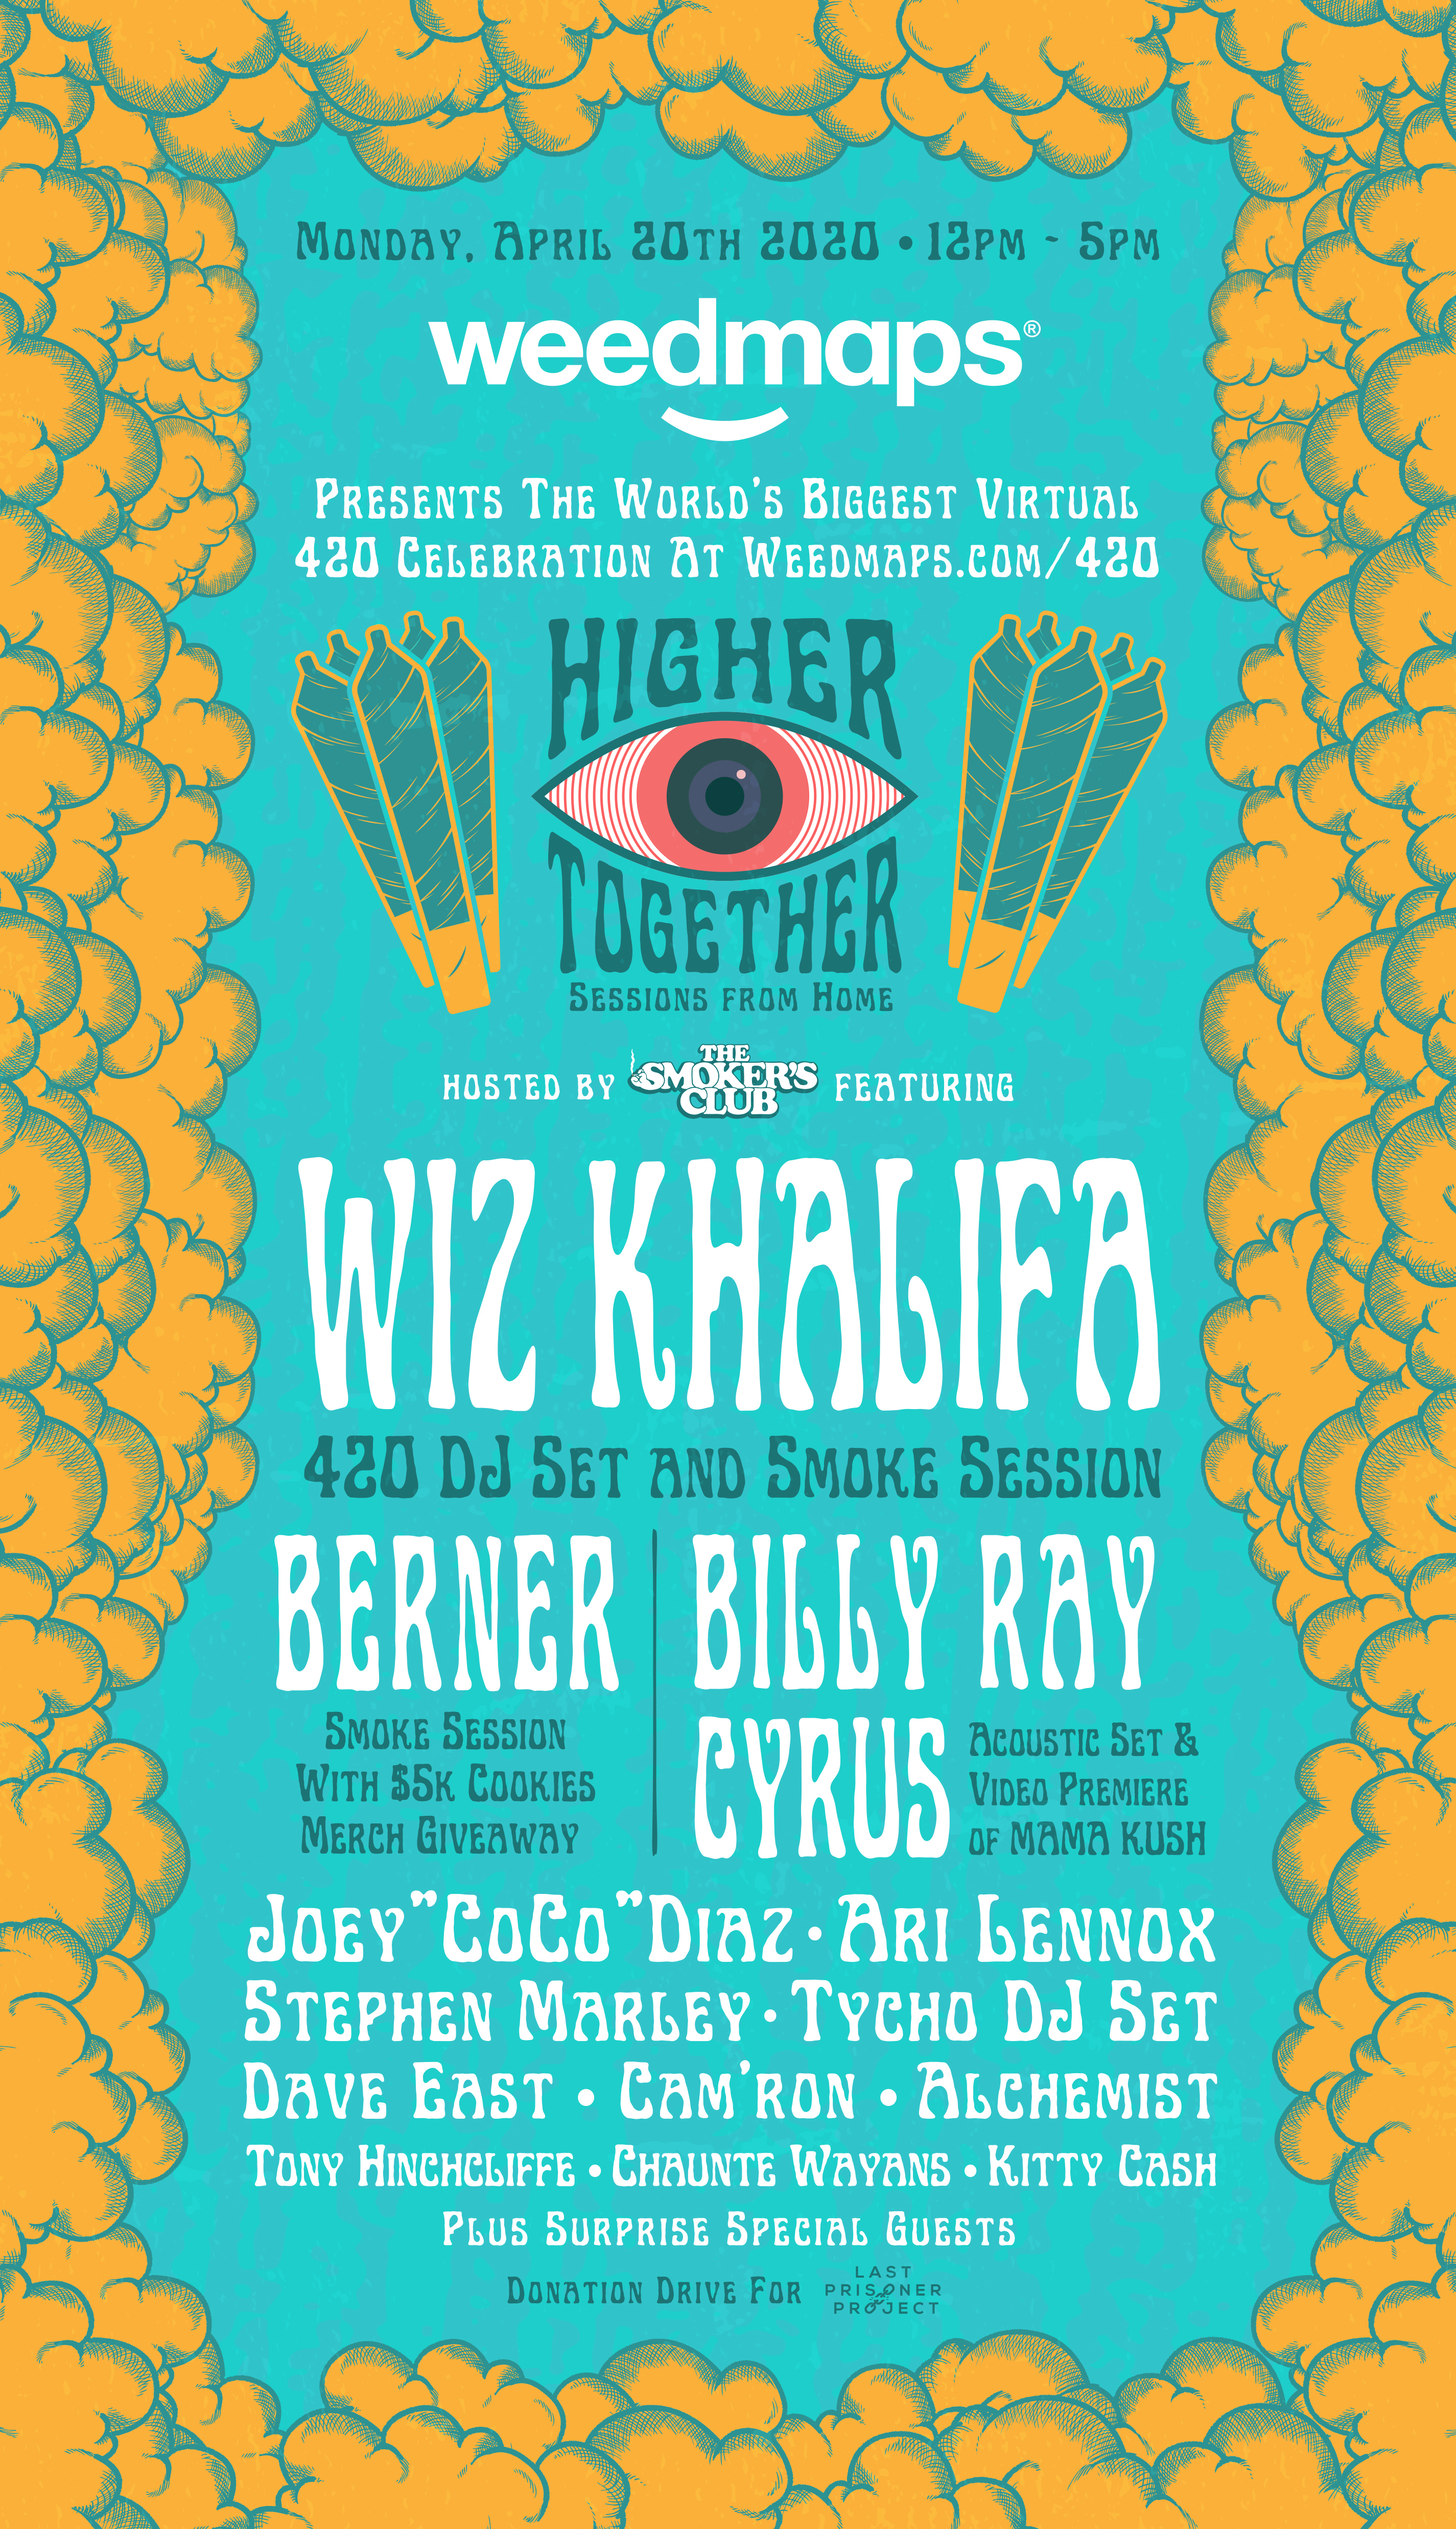 Weedmaps Brings Together Wiz Khalifa Billy Ray Cyrus Ari Lennox Joey Coco Diaz Berner Other Top Talent For World S Biggest 4 20 Virtual Celebration Business Wire